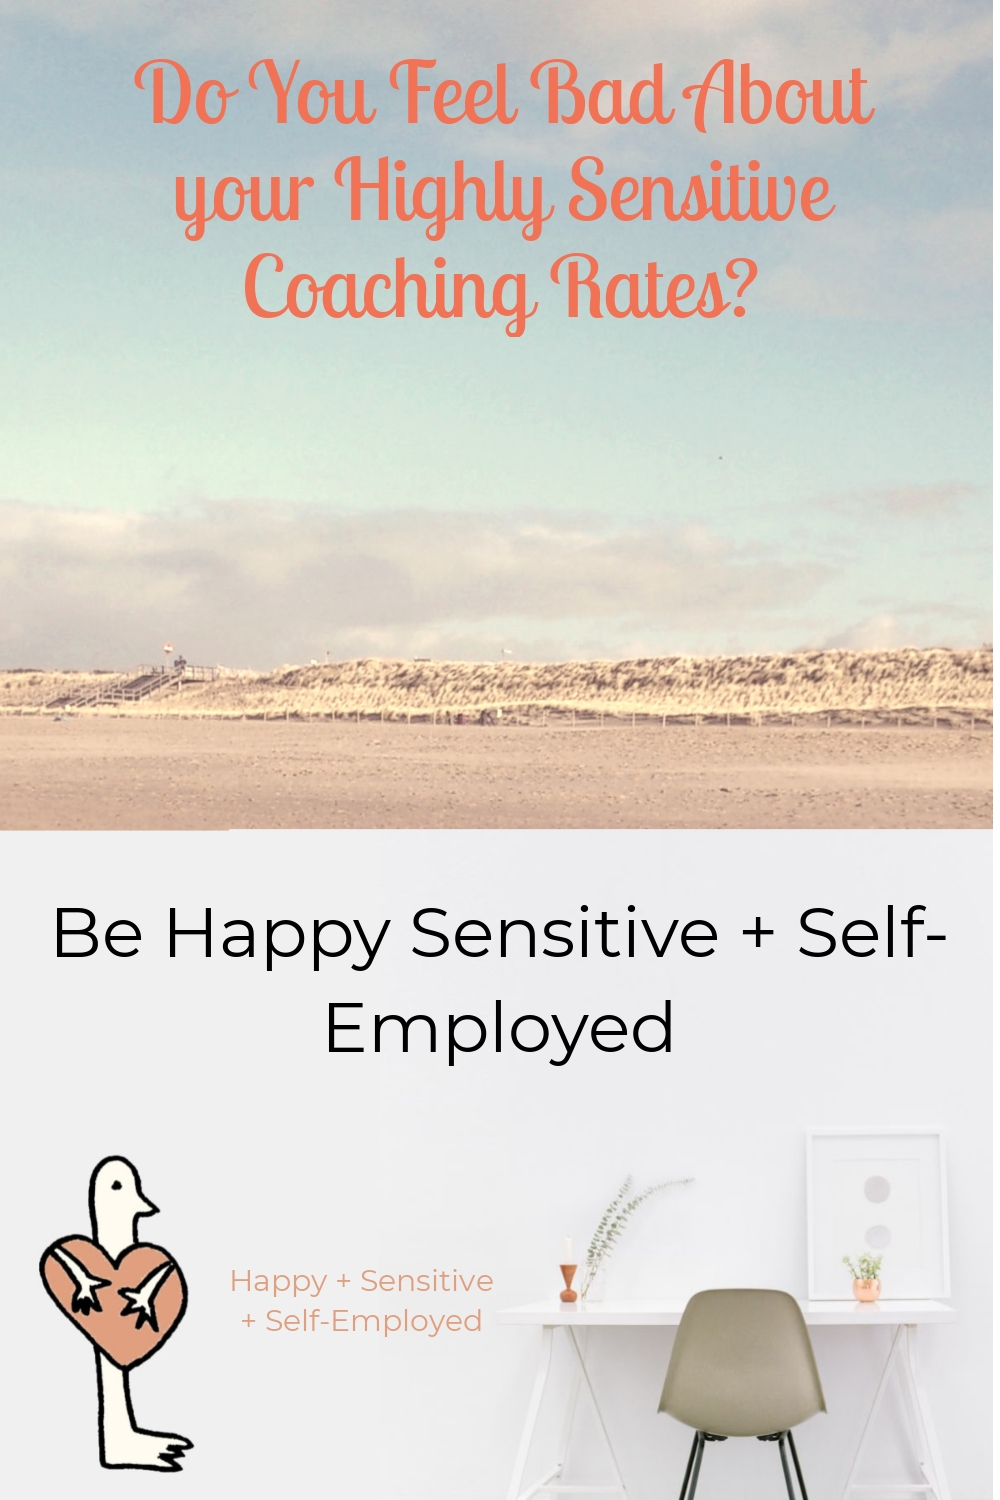 Do You Feel Bad About your Highly Sensitive Coaching Rates?